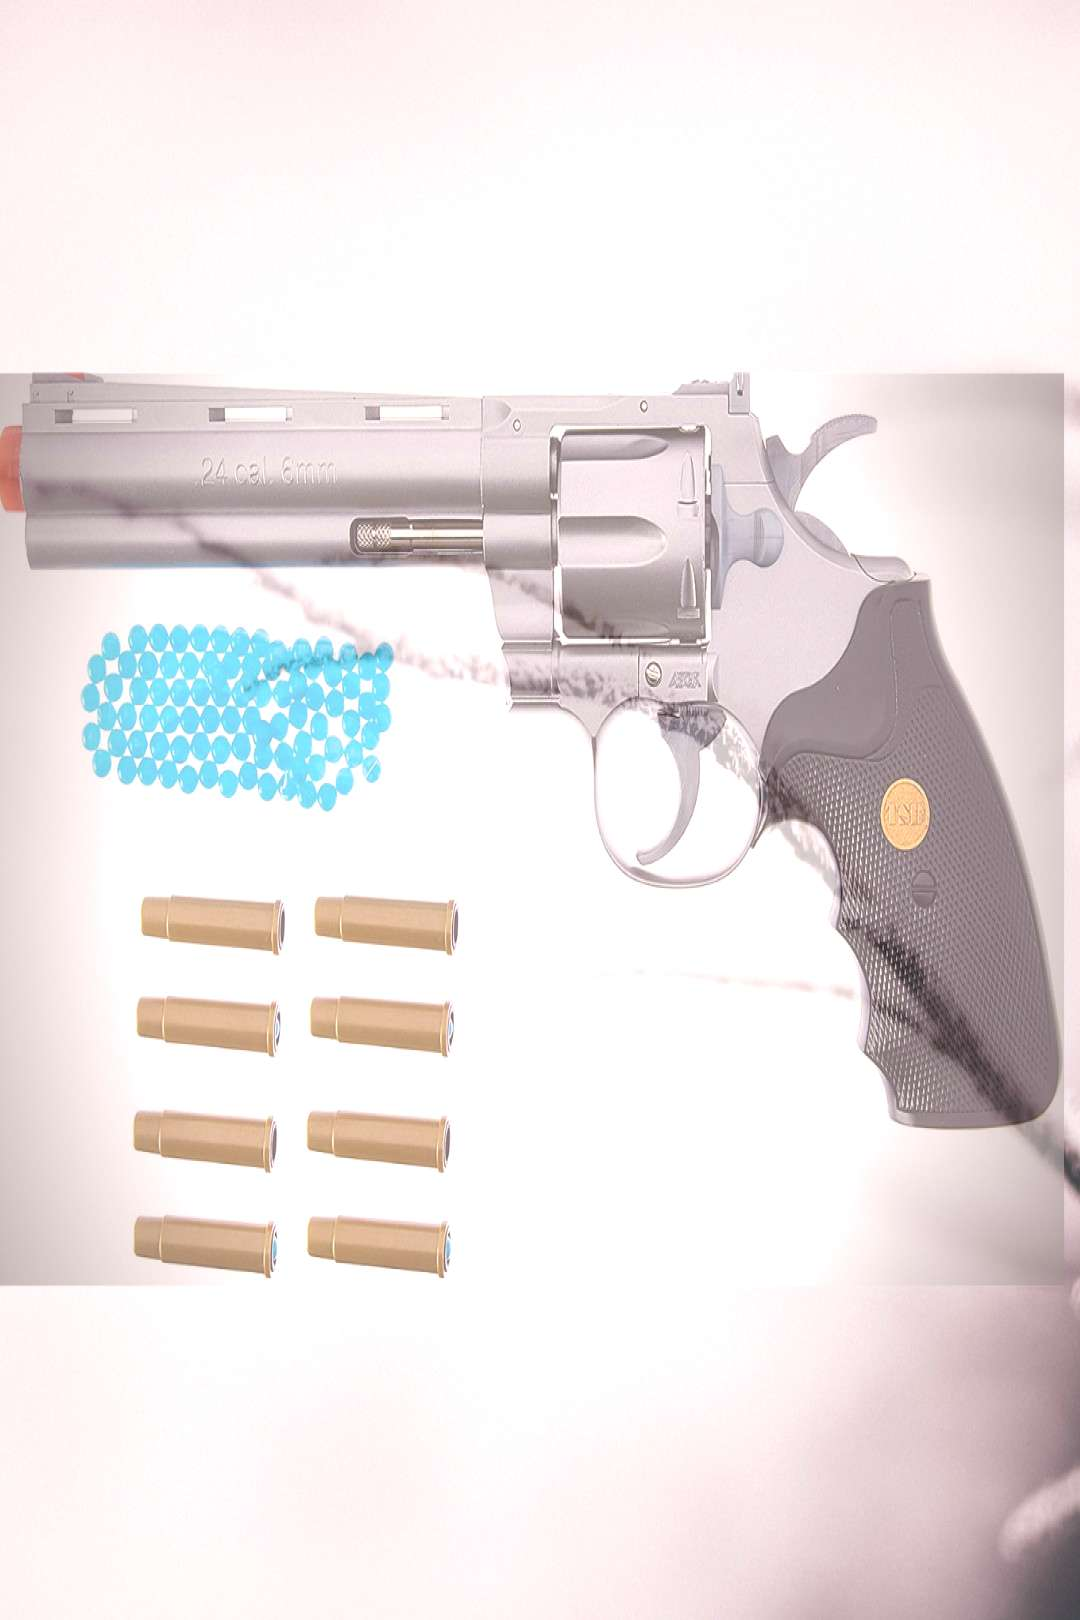 Wholesale Airsoft Revolvers for Sale Wholesale Airsoft Revolvers for Sale